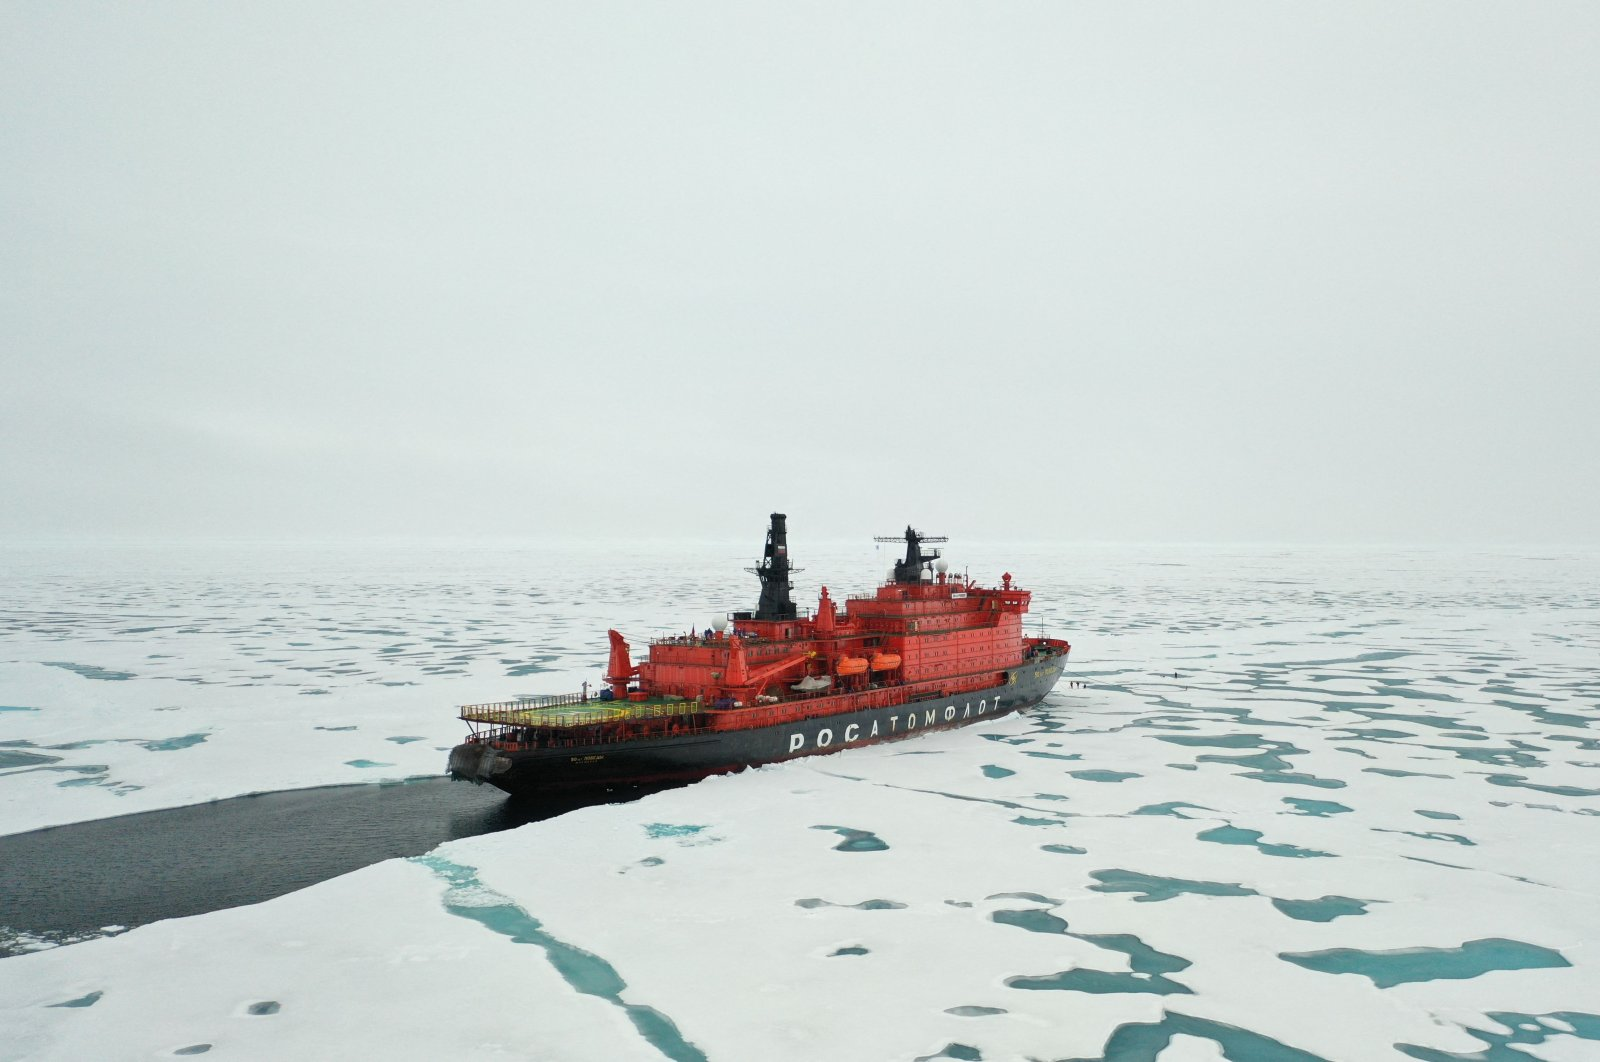 """The Russian nuclear-powered icebreaker """"50 Years of Victory"""" is seen at the North Pole on Aug. 18, 2021. (AFP Photo)"""